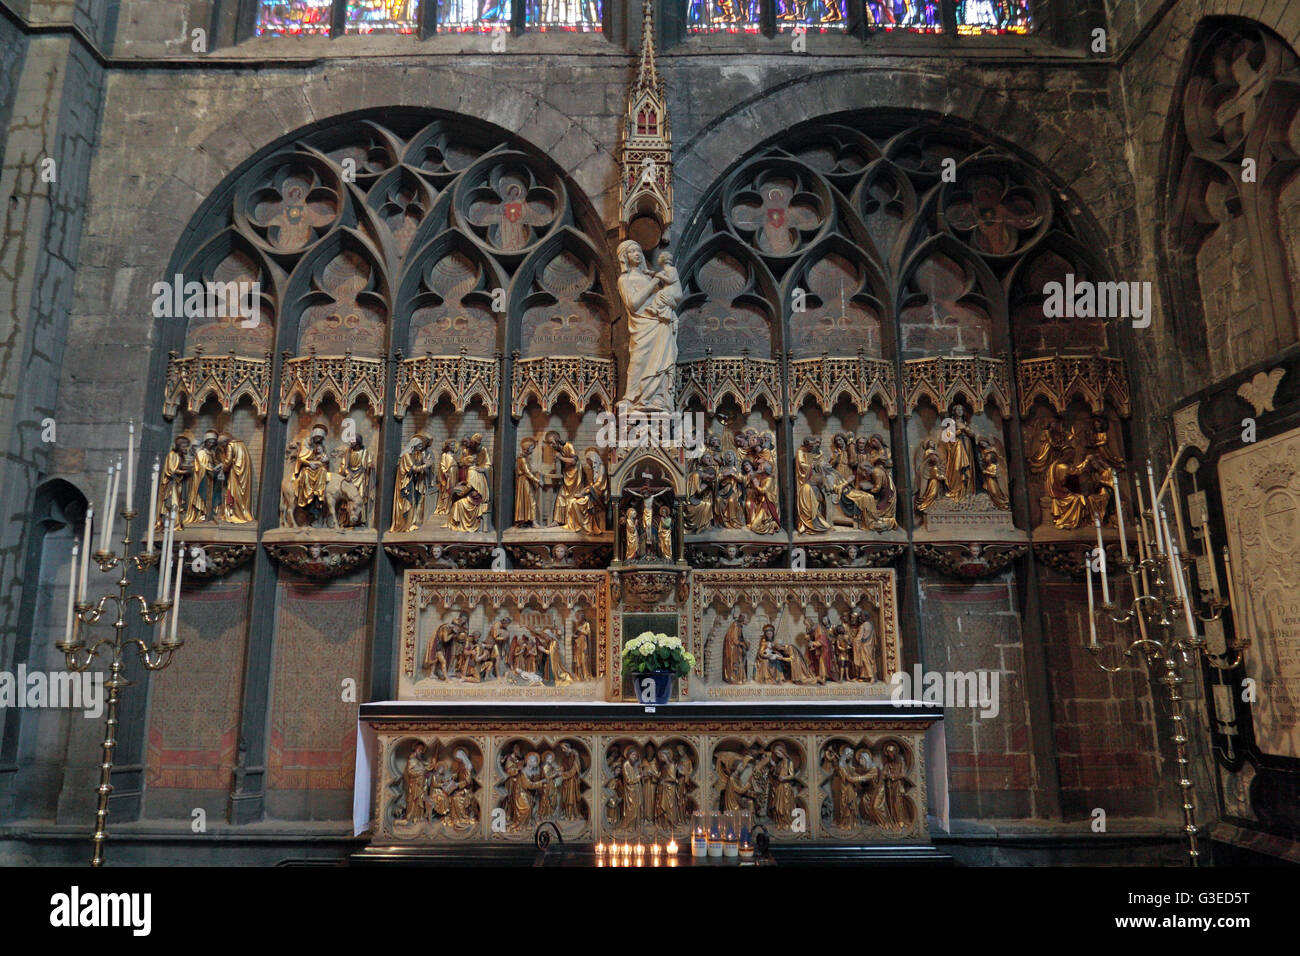 The Bethlehem gate (screen) inside the Collégiale Notre-Dame et Saint-Domitien (Notre-Dame and St. Domitian) in Stock Photo